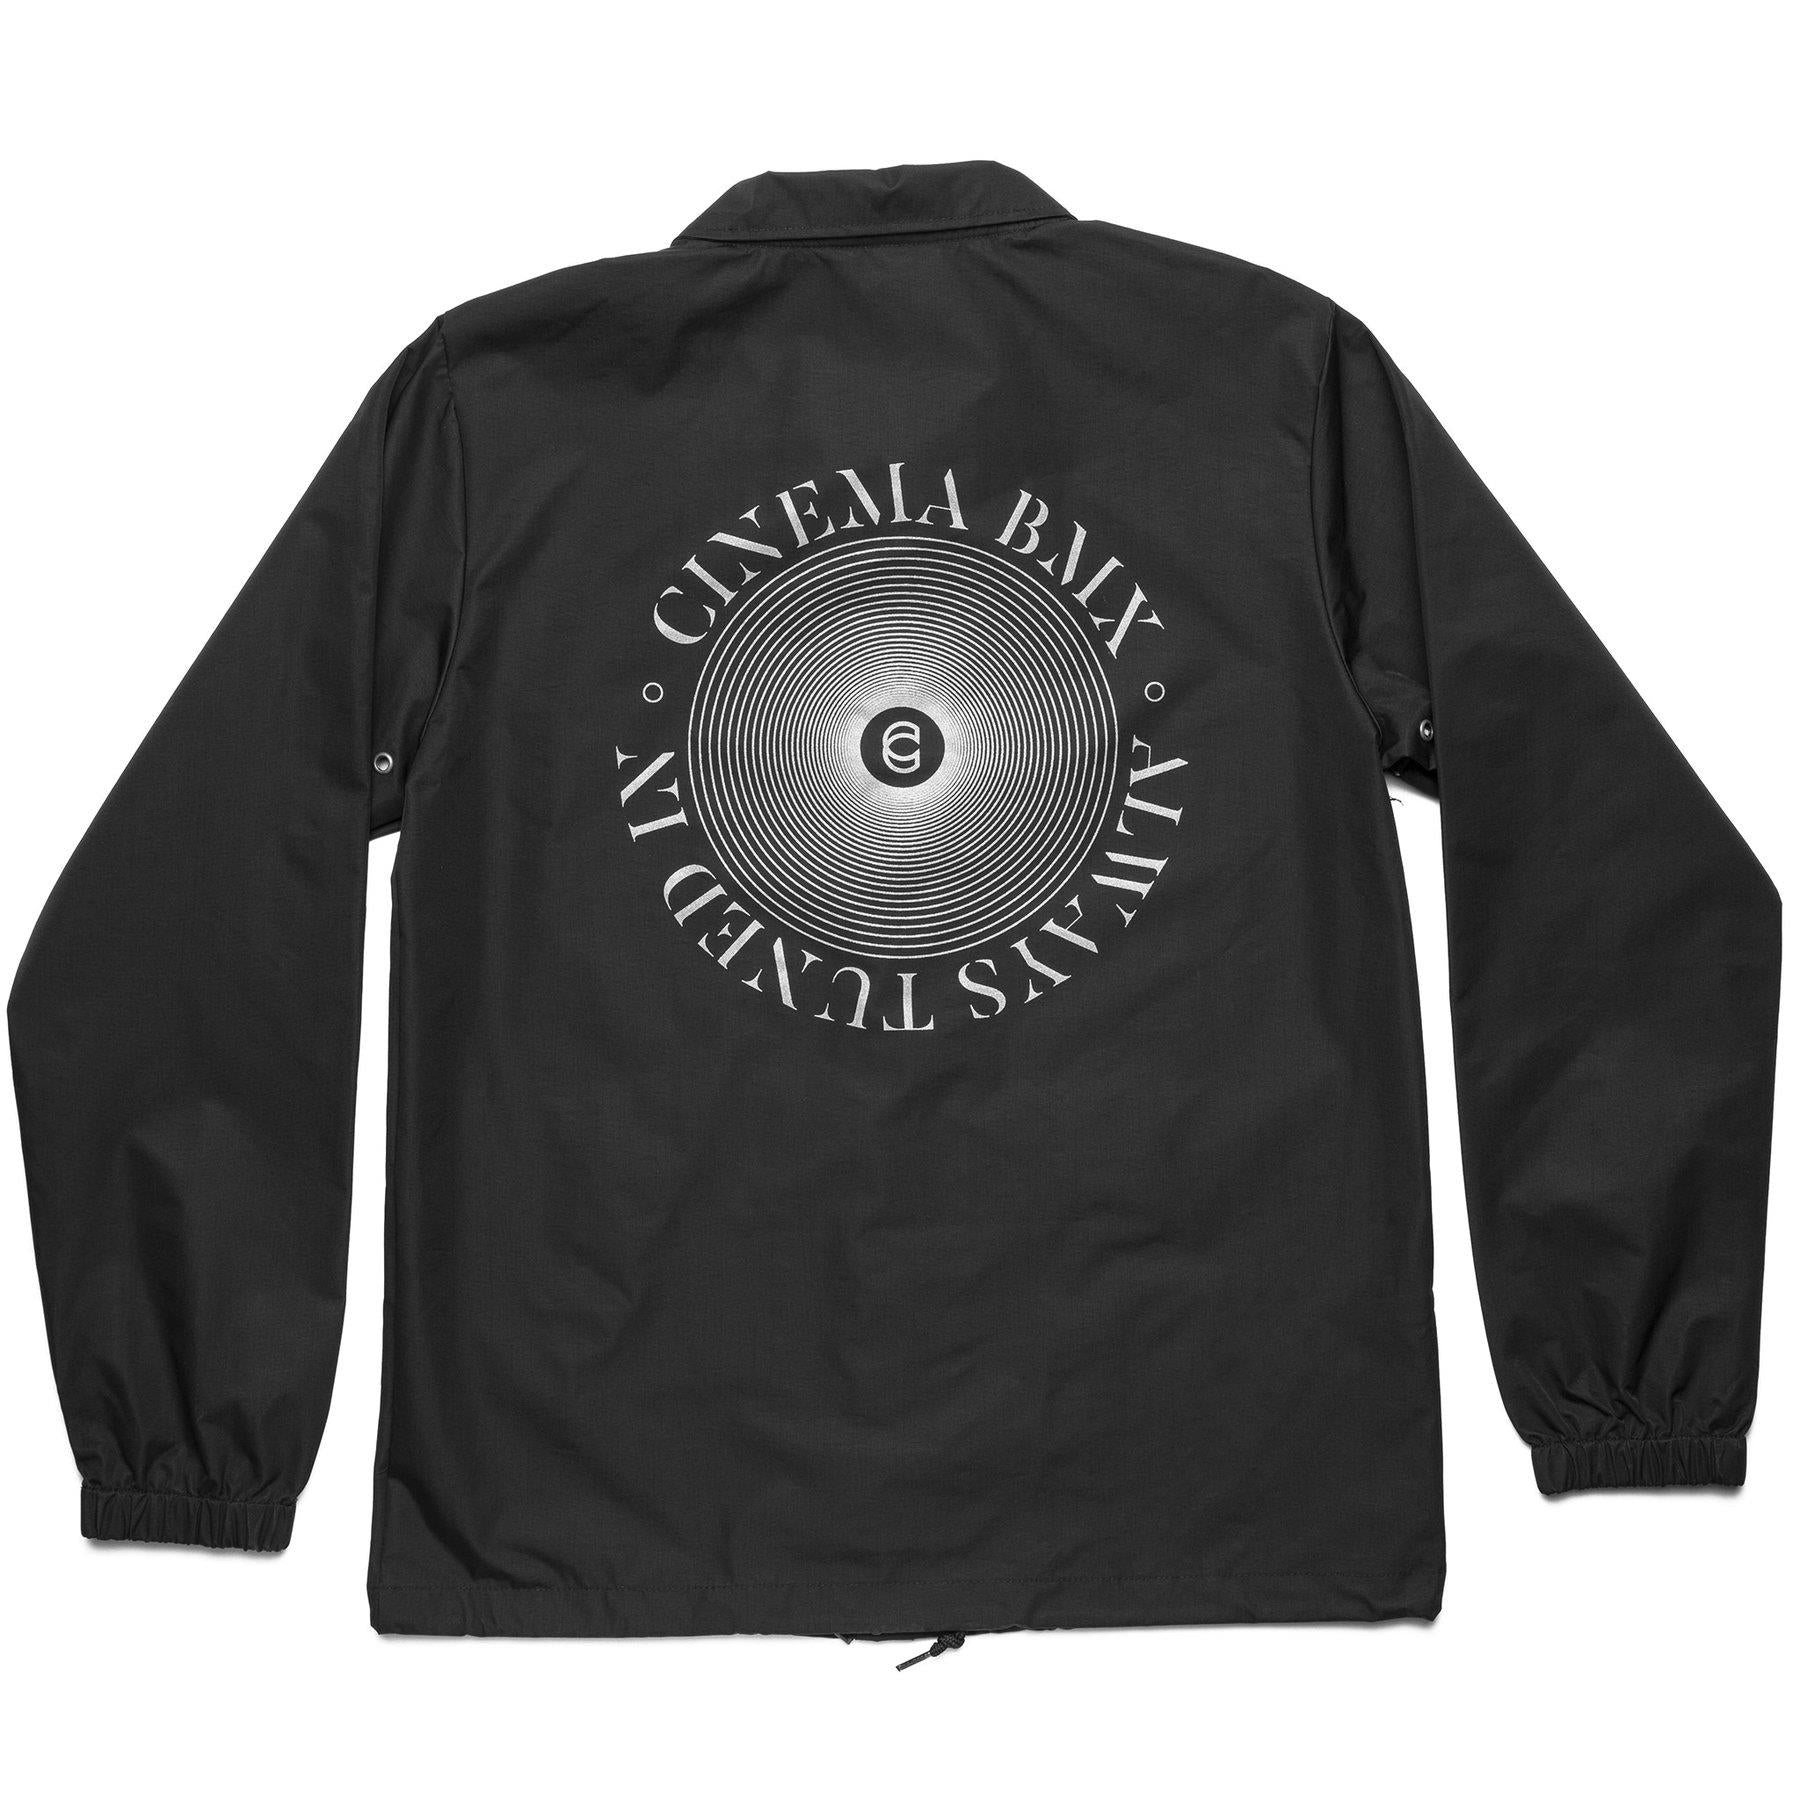 Cinema Full Circle Coaches Jacket - Black